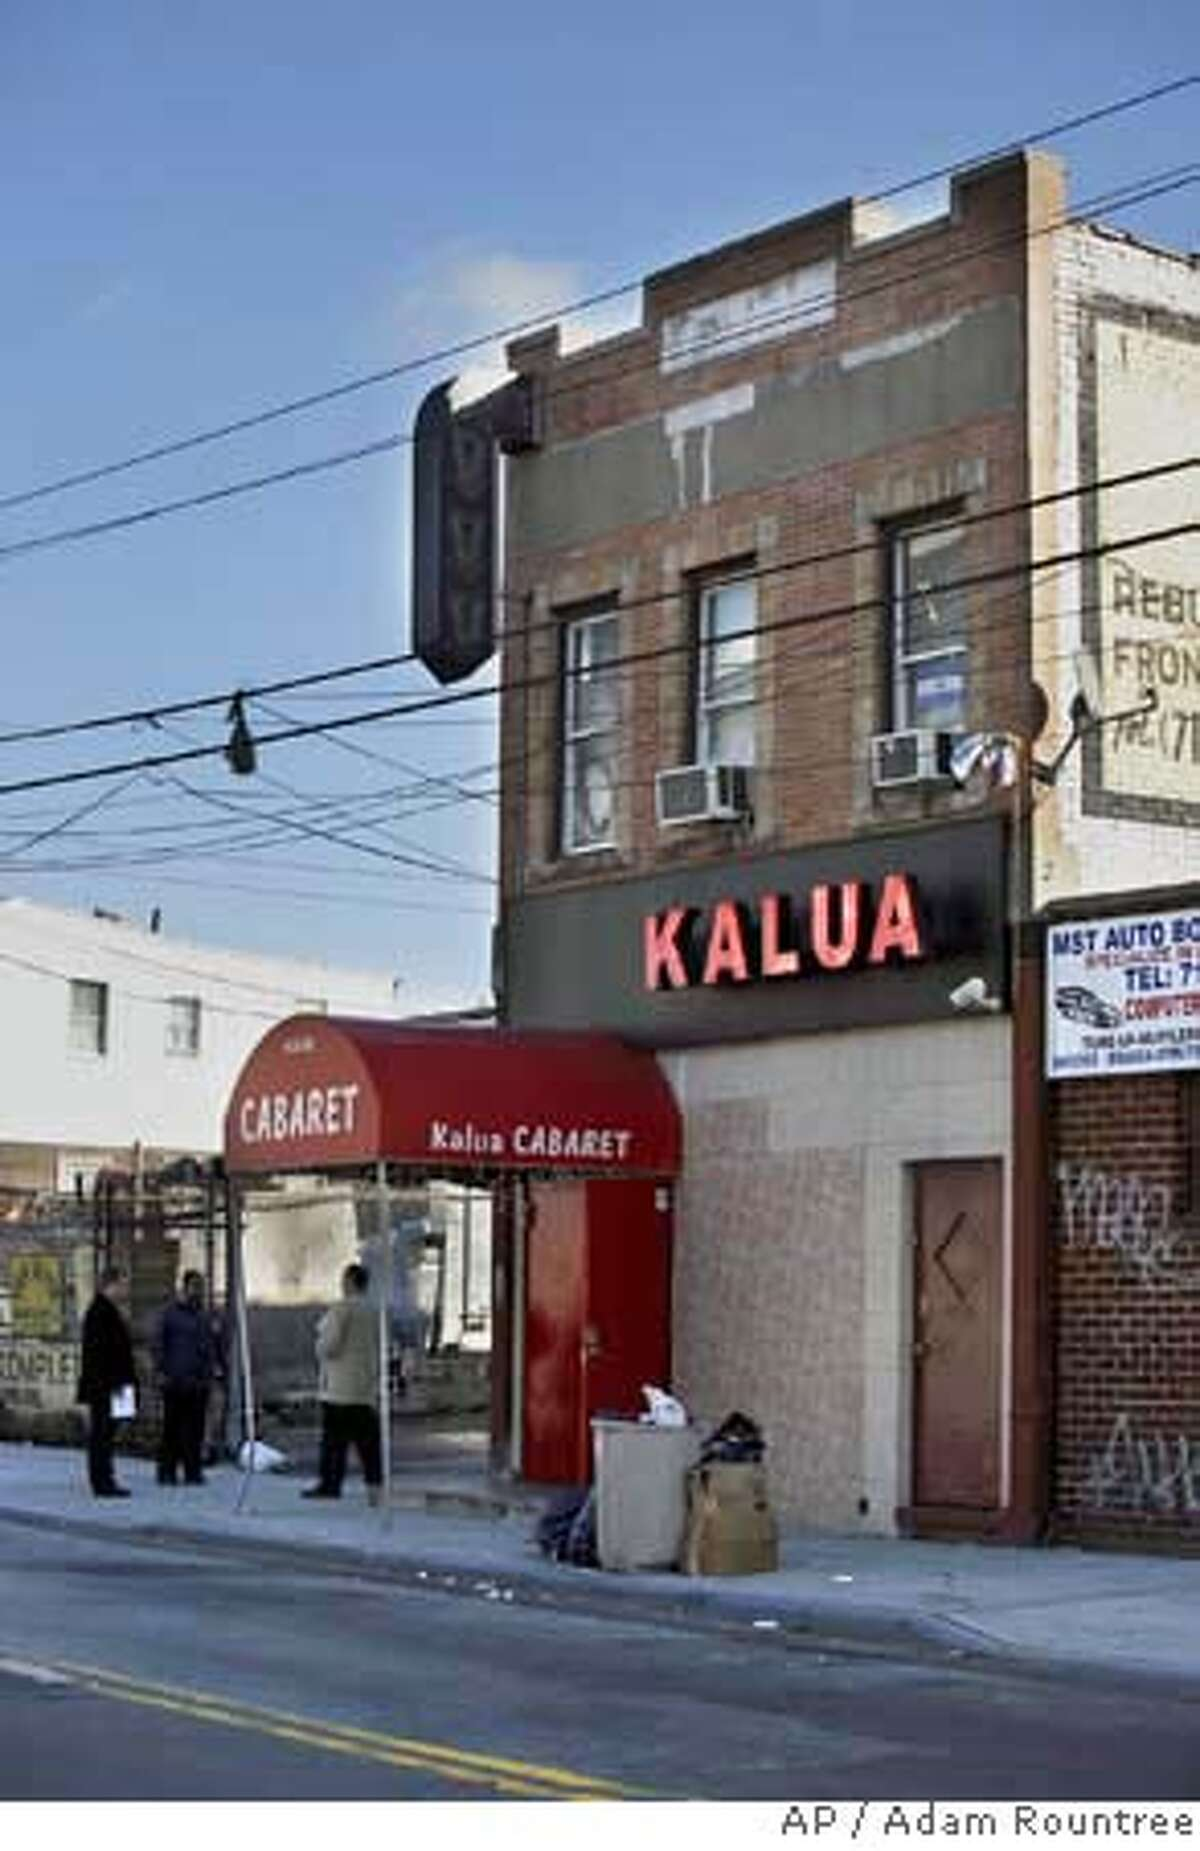 Police detectives are seen outside of Kalua Cabaret, a strip club in the Queens borough of New York on Saturday, Nov. 25, 2006. Trent Benefeld, 23, Joseph Guzman, 31, and Sean Bell, 23, who were attending a bachelor party at the club were shot by police officers just after leaving on early Saturday morning. Benefeld and Guzman were hospitalized and Bell, the groom, died from his gunshot wounds. (AP Photo/Adam Rountree)